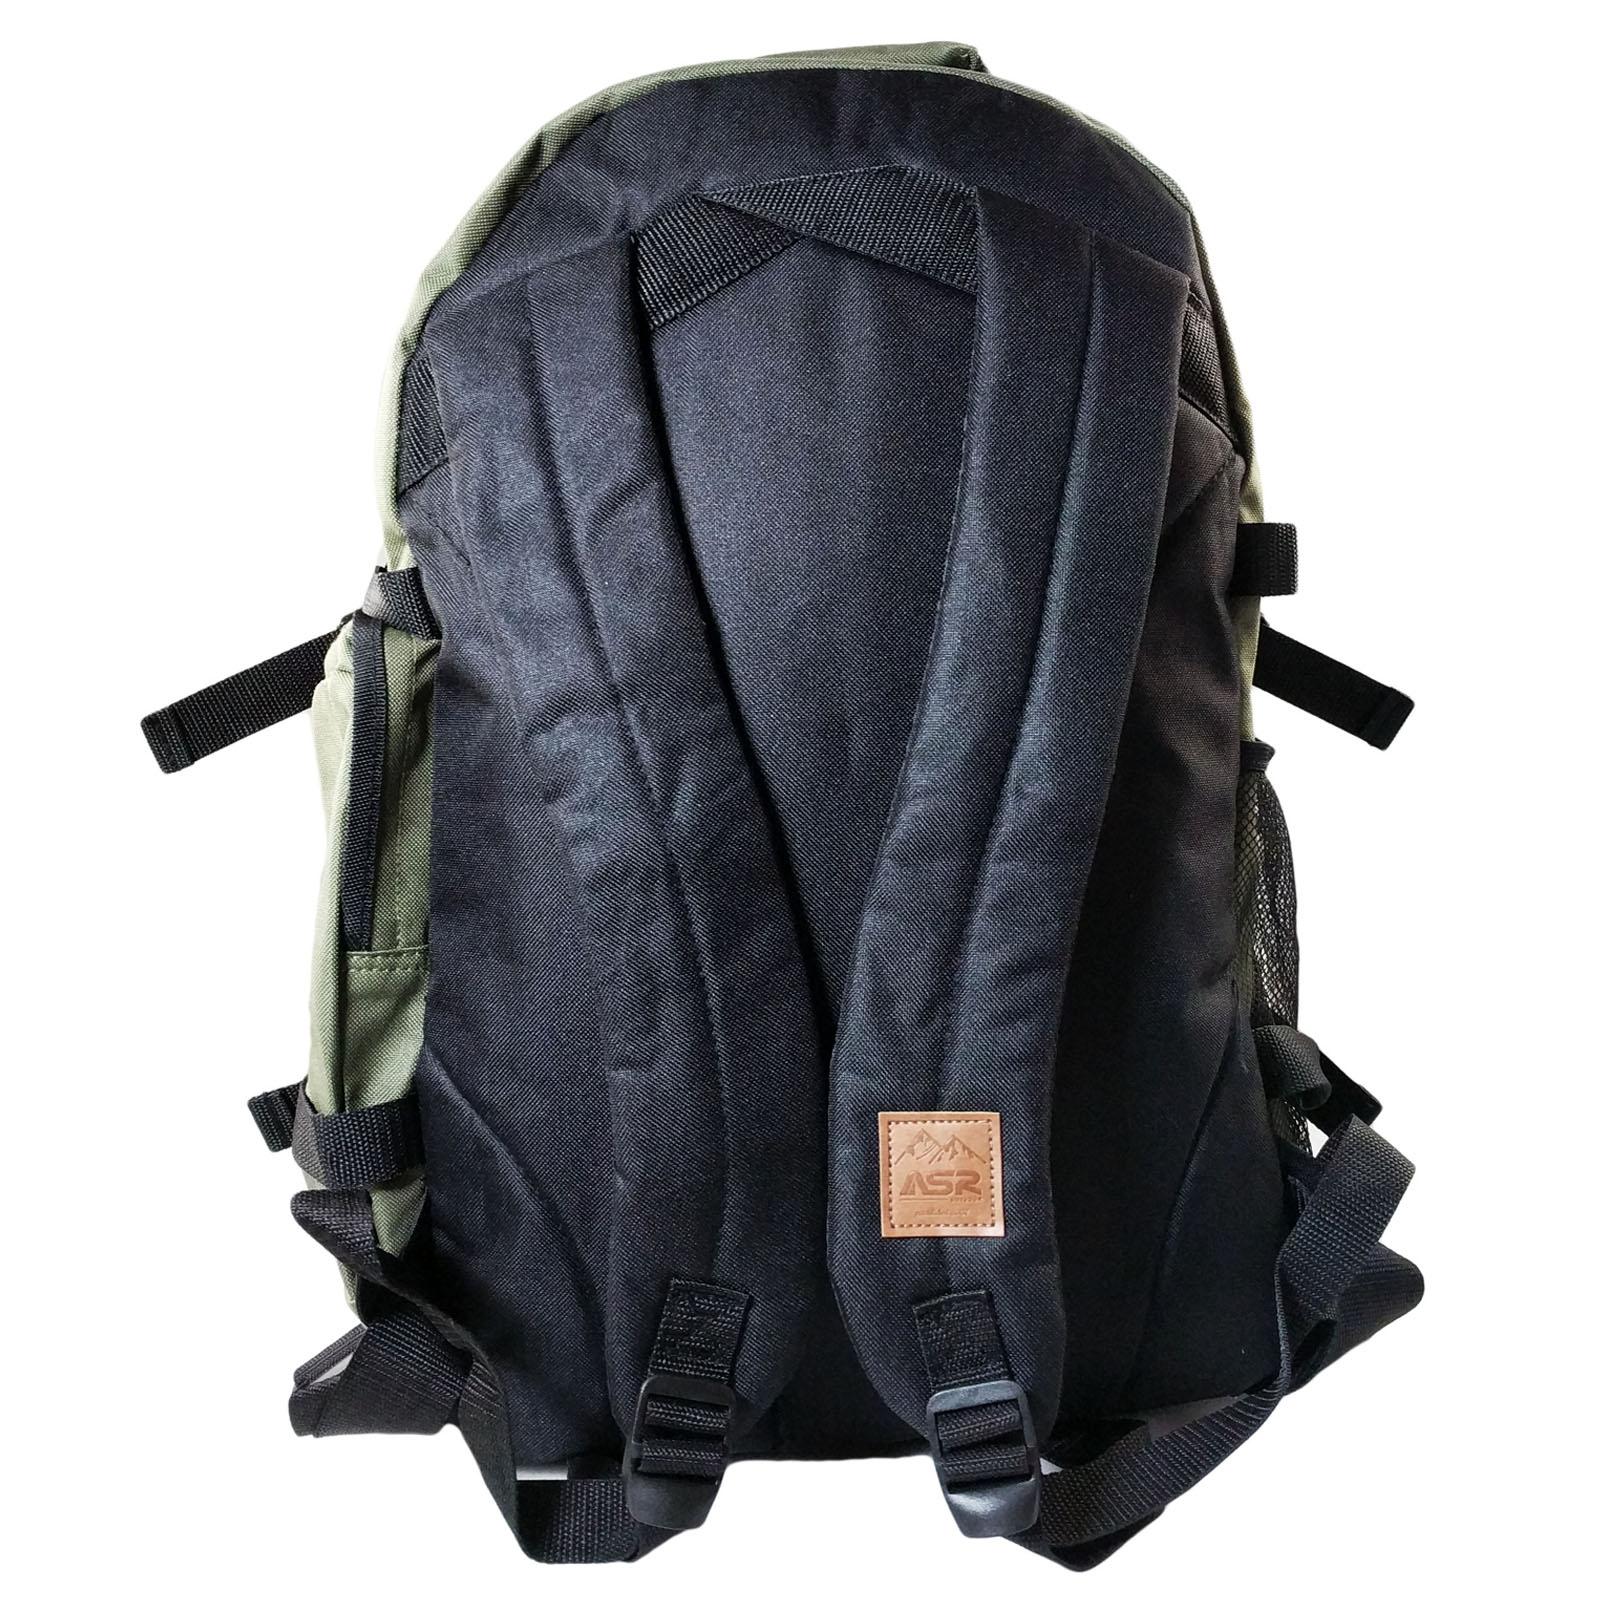 ASR Outdoor Deluxe Backpack with Wire Port - OD Green